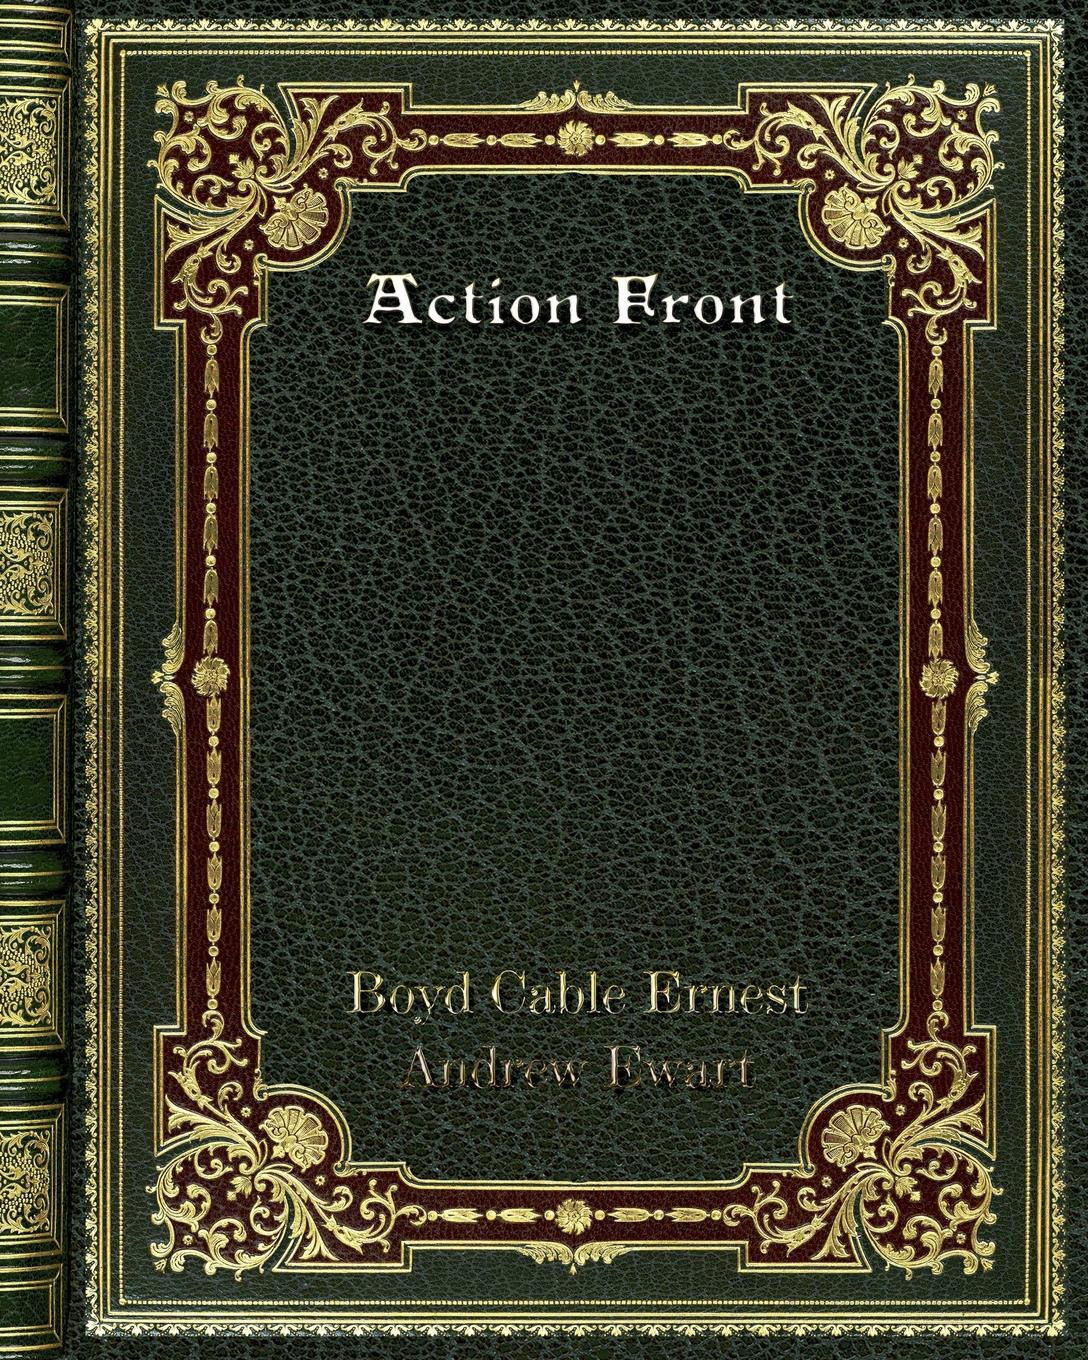 oyd Cable Ernest Andrew Ewart Action Front